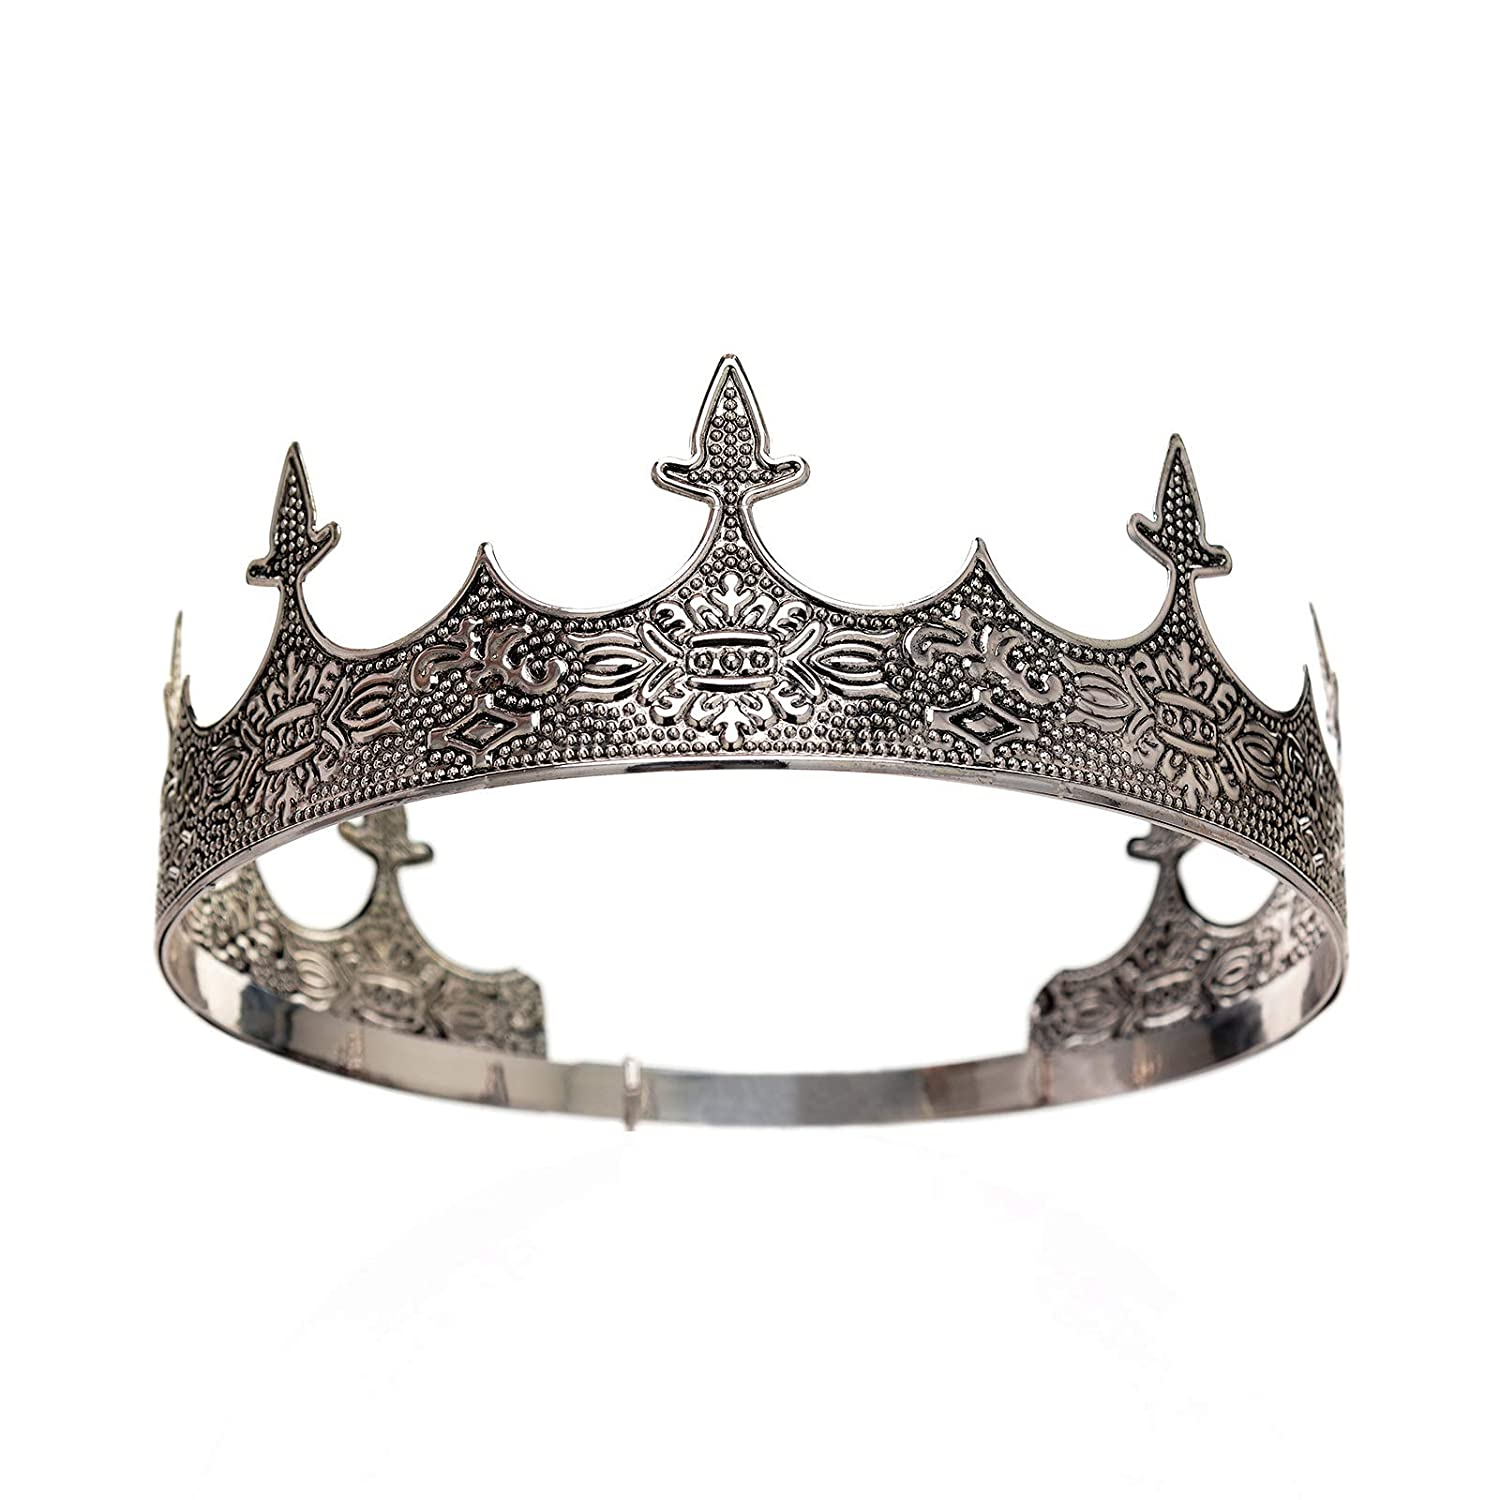 Royal Medieval Celtic Silver King Prince Crown Halloween Costume Accessory